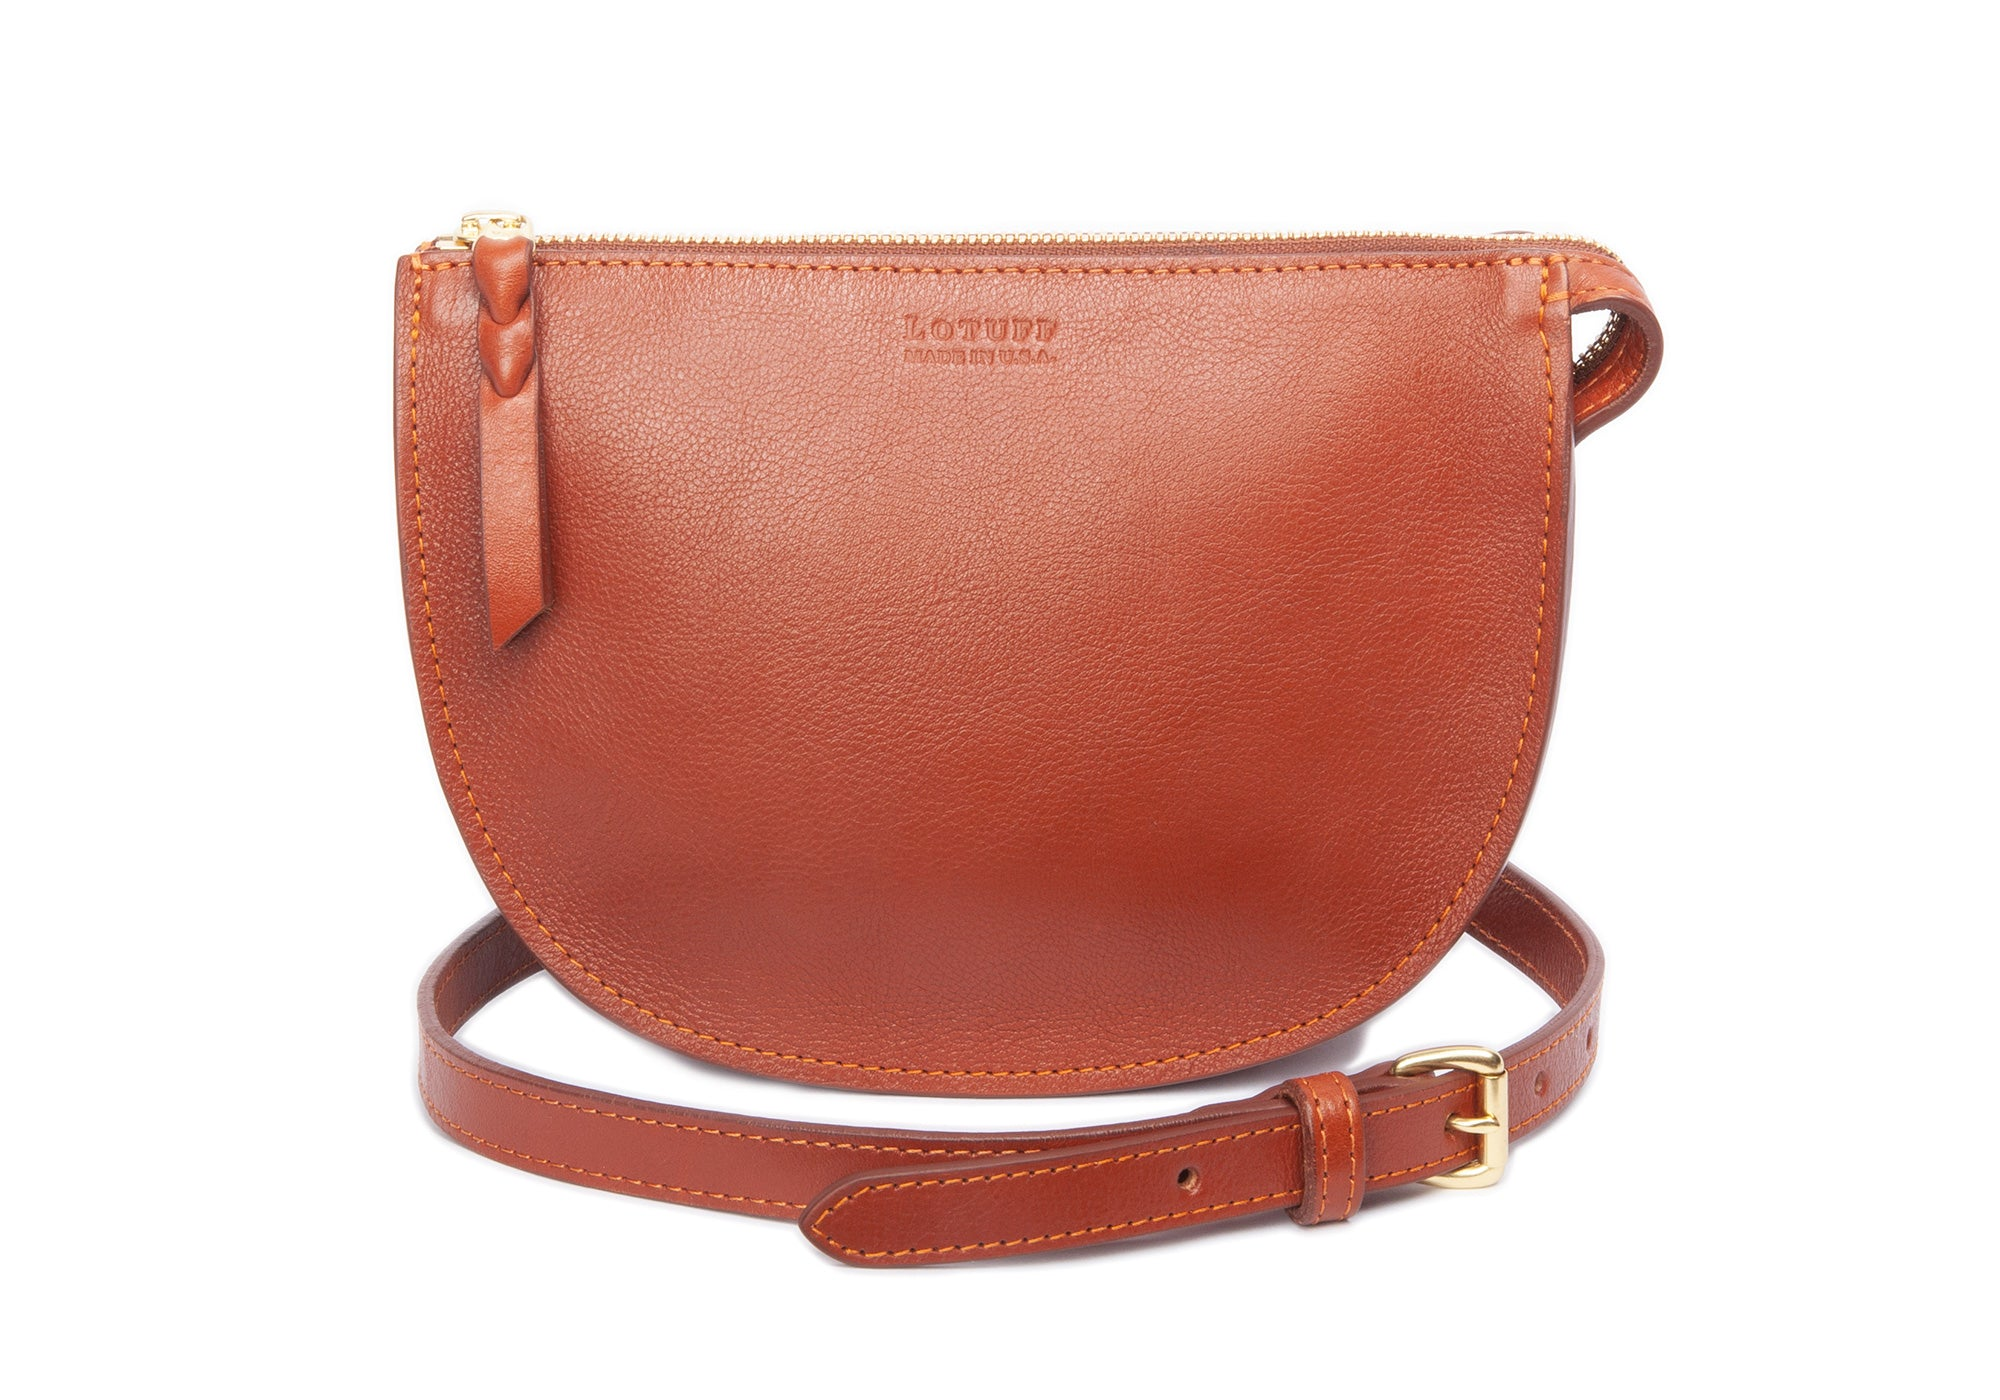 The Mini Luna Belt Bag Saddle Tan-Natural